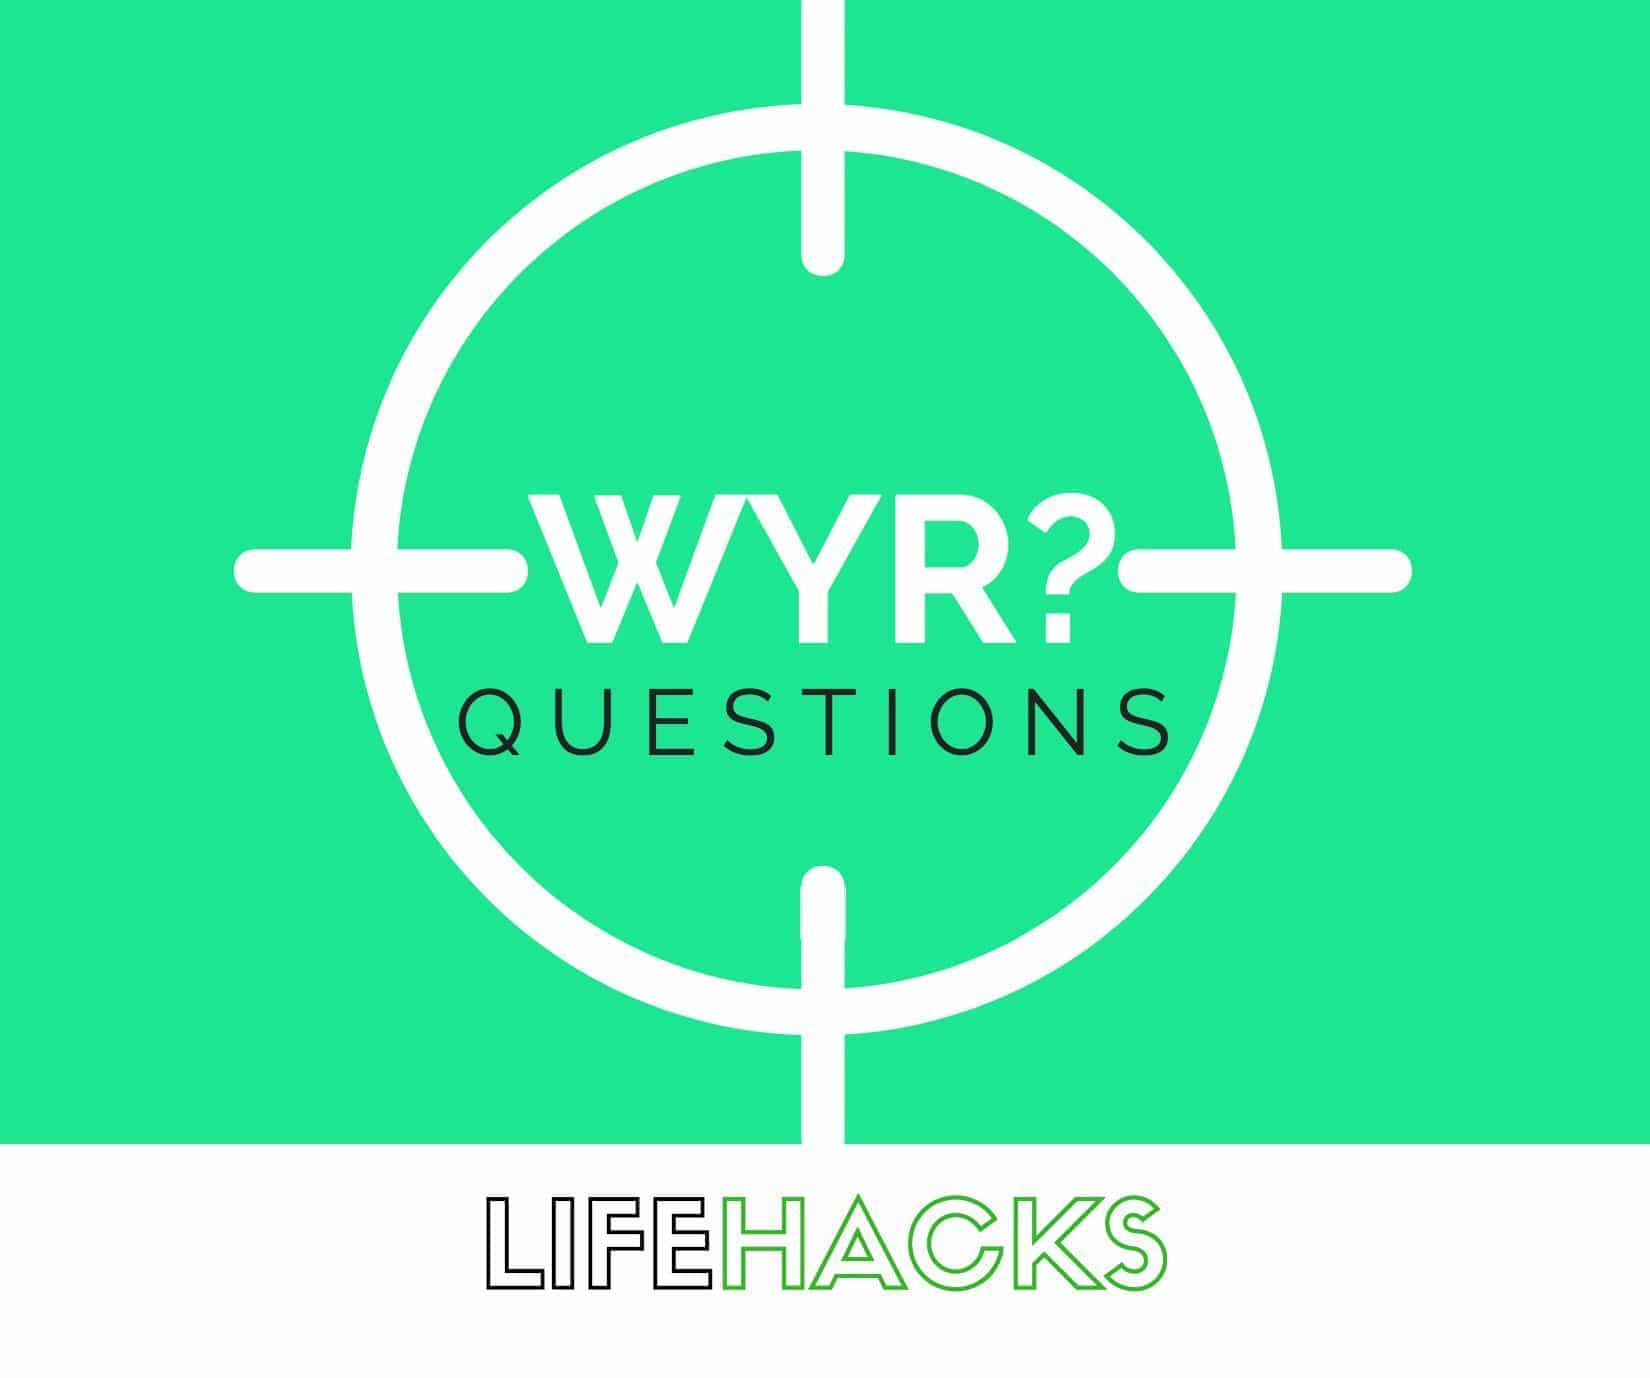 LifeHacks - Would You Rather Questions for Boyfriend